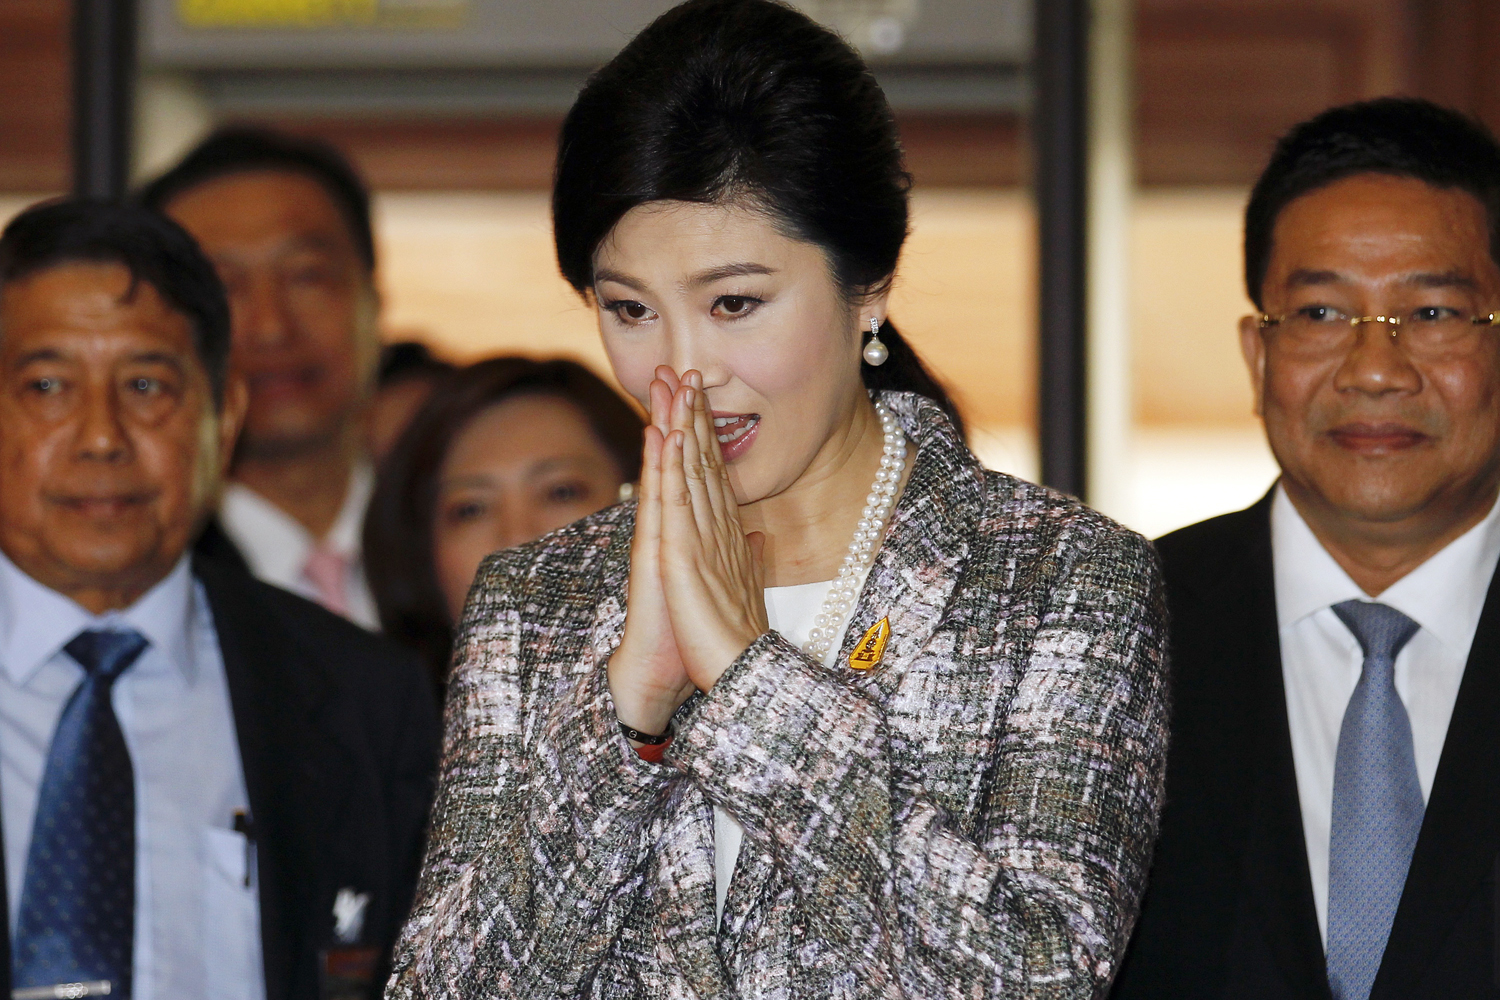 Ousted former Prime Minister Yingluck Shinawatra arrives at Parliament before the National Legislative Assembly meeting in Bangkok on Jan. 22, 2015